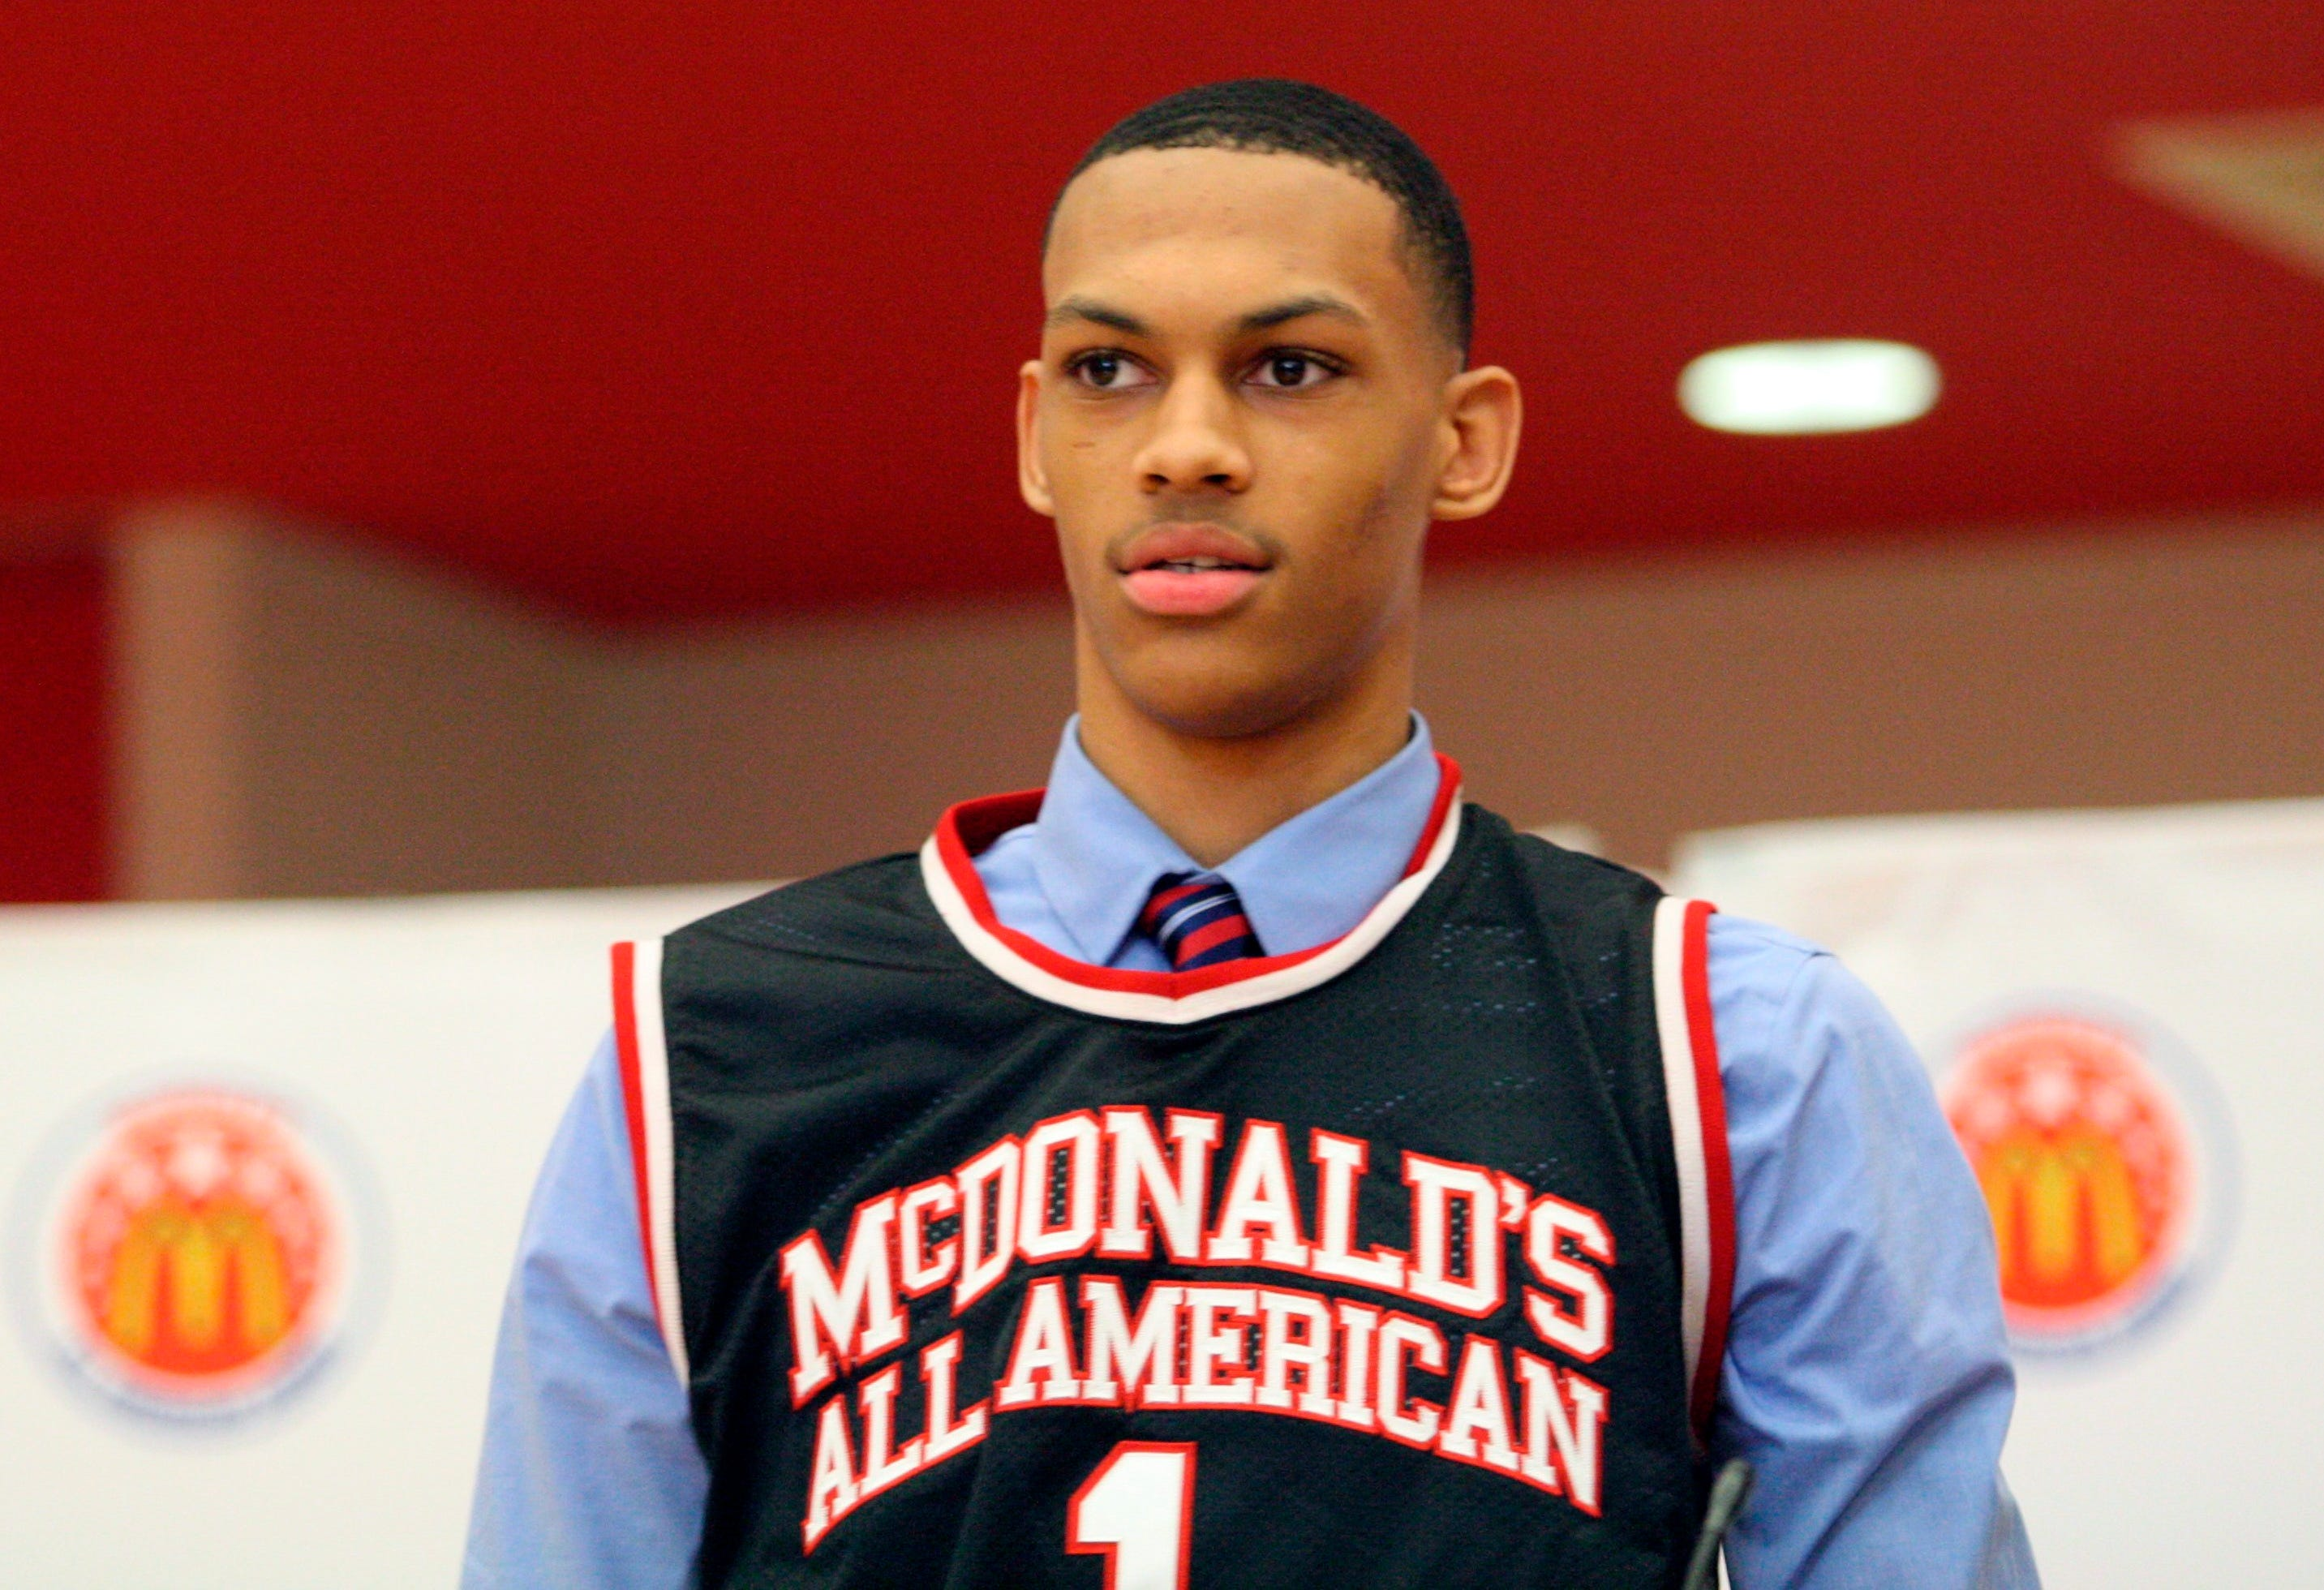 Reports: Top high school prospect Darius Bazley signs New Balance deal worth up to $14 million